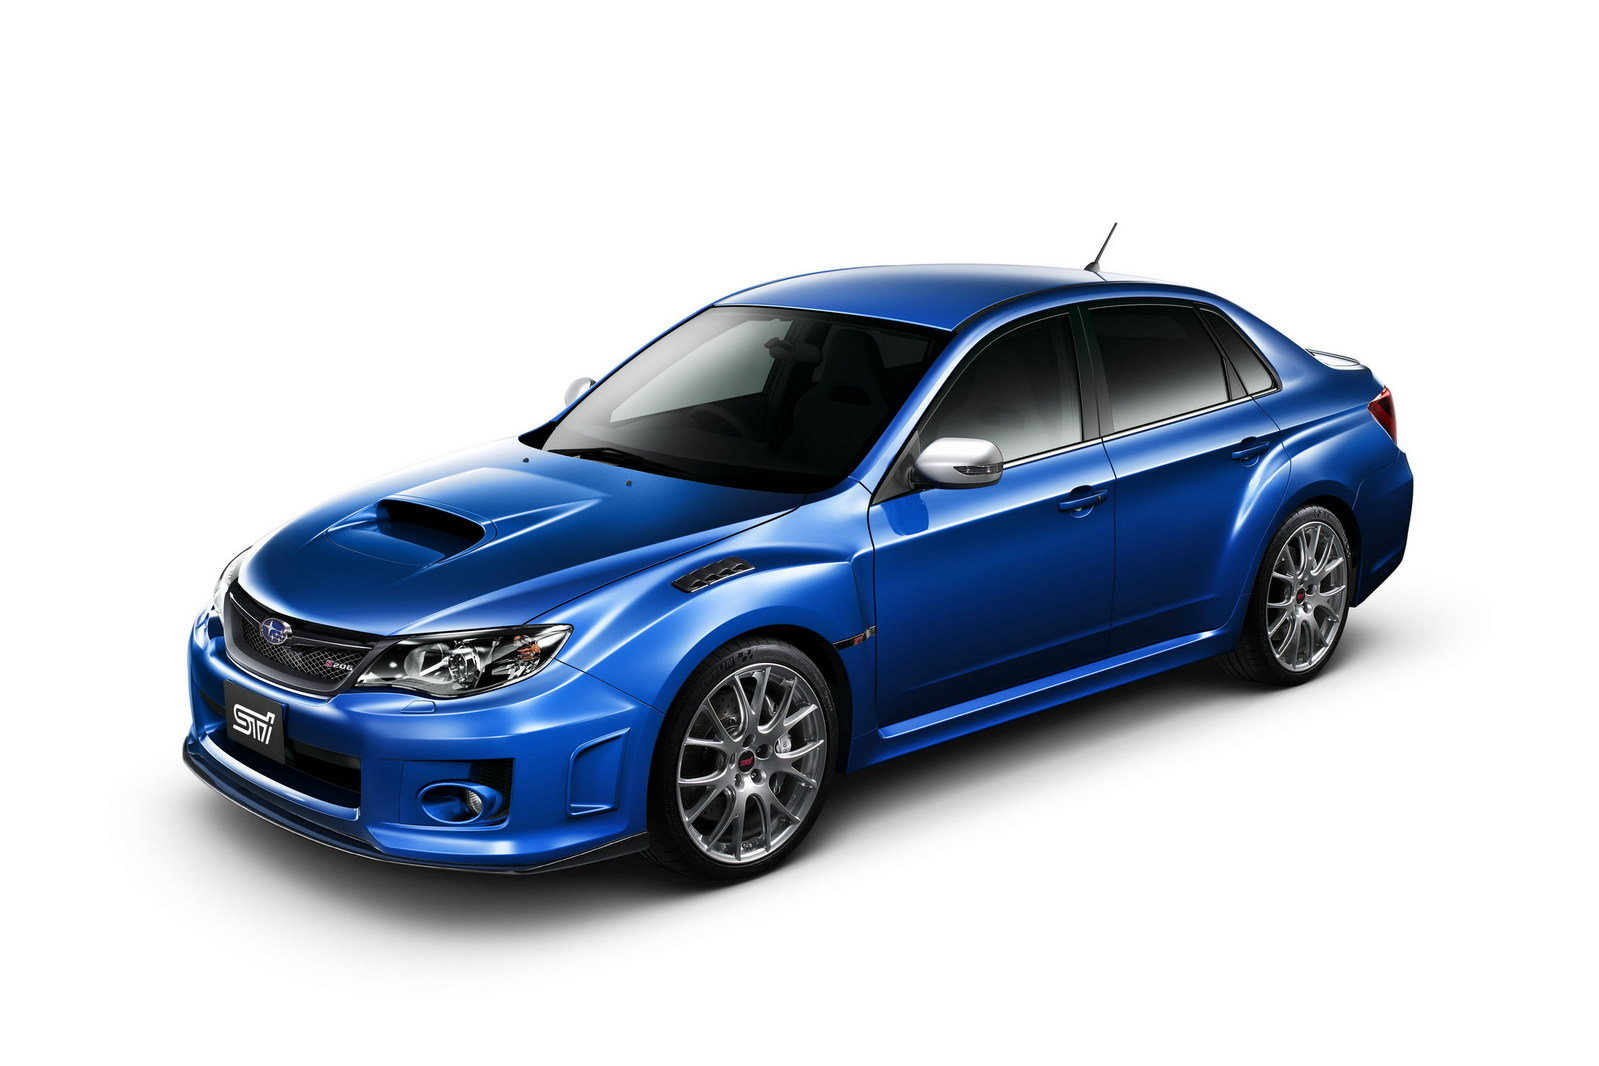 subaru impreza reviews, specs & prices - top speed